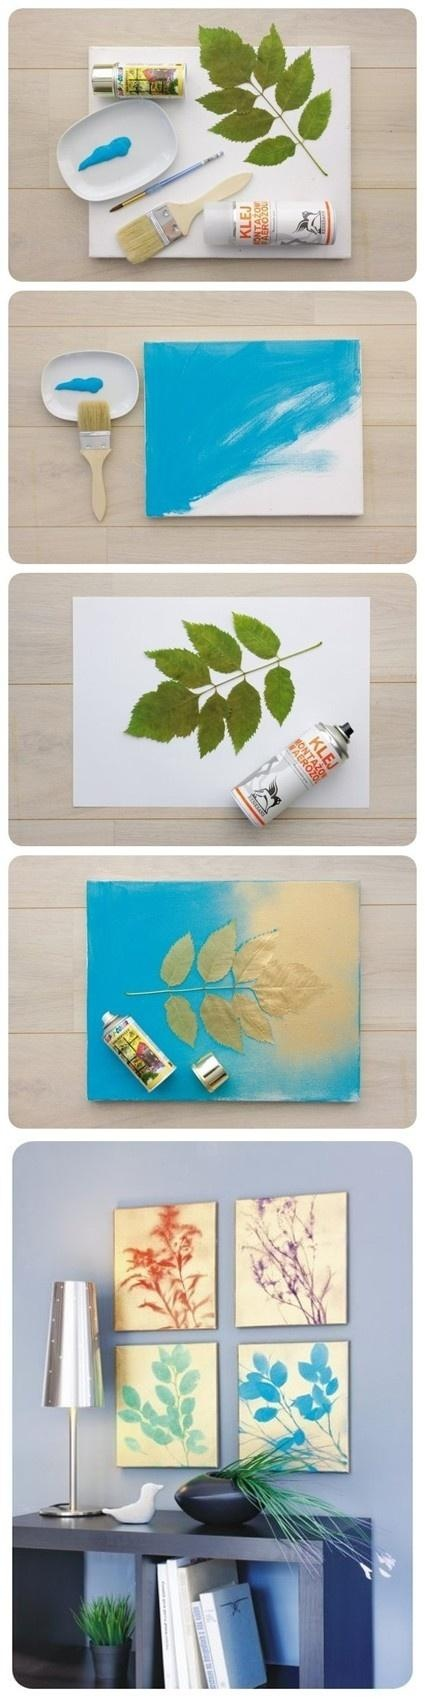 Leaf Art-  coat canvas with leaf colour you want  spray leaf with glue  stick on canvas & spray with cream spray paint  peel off leaf palm leaves for Easter